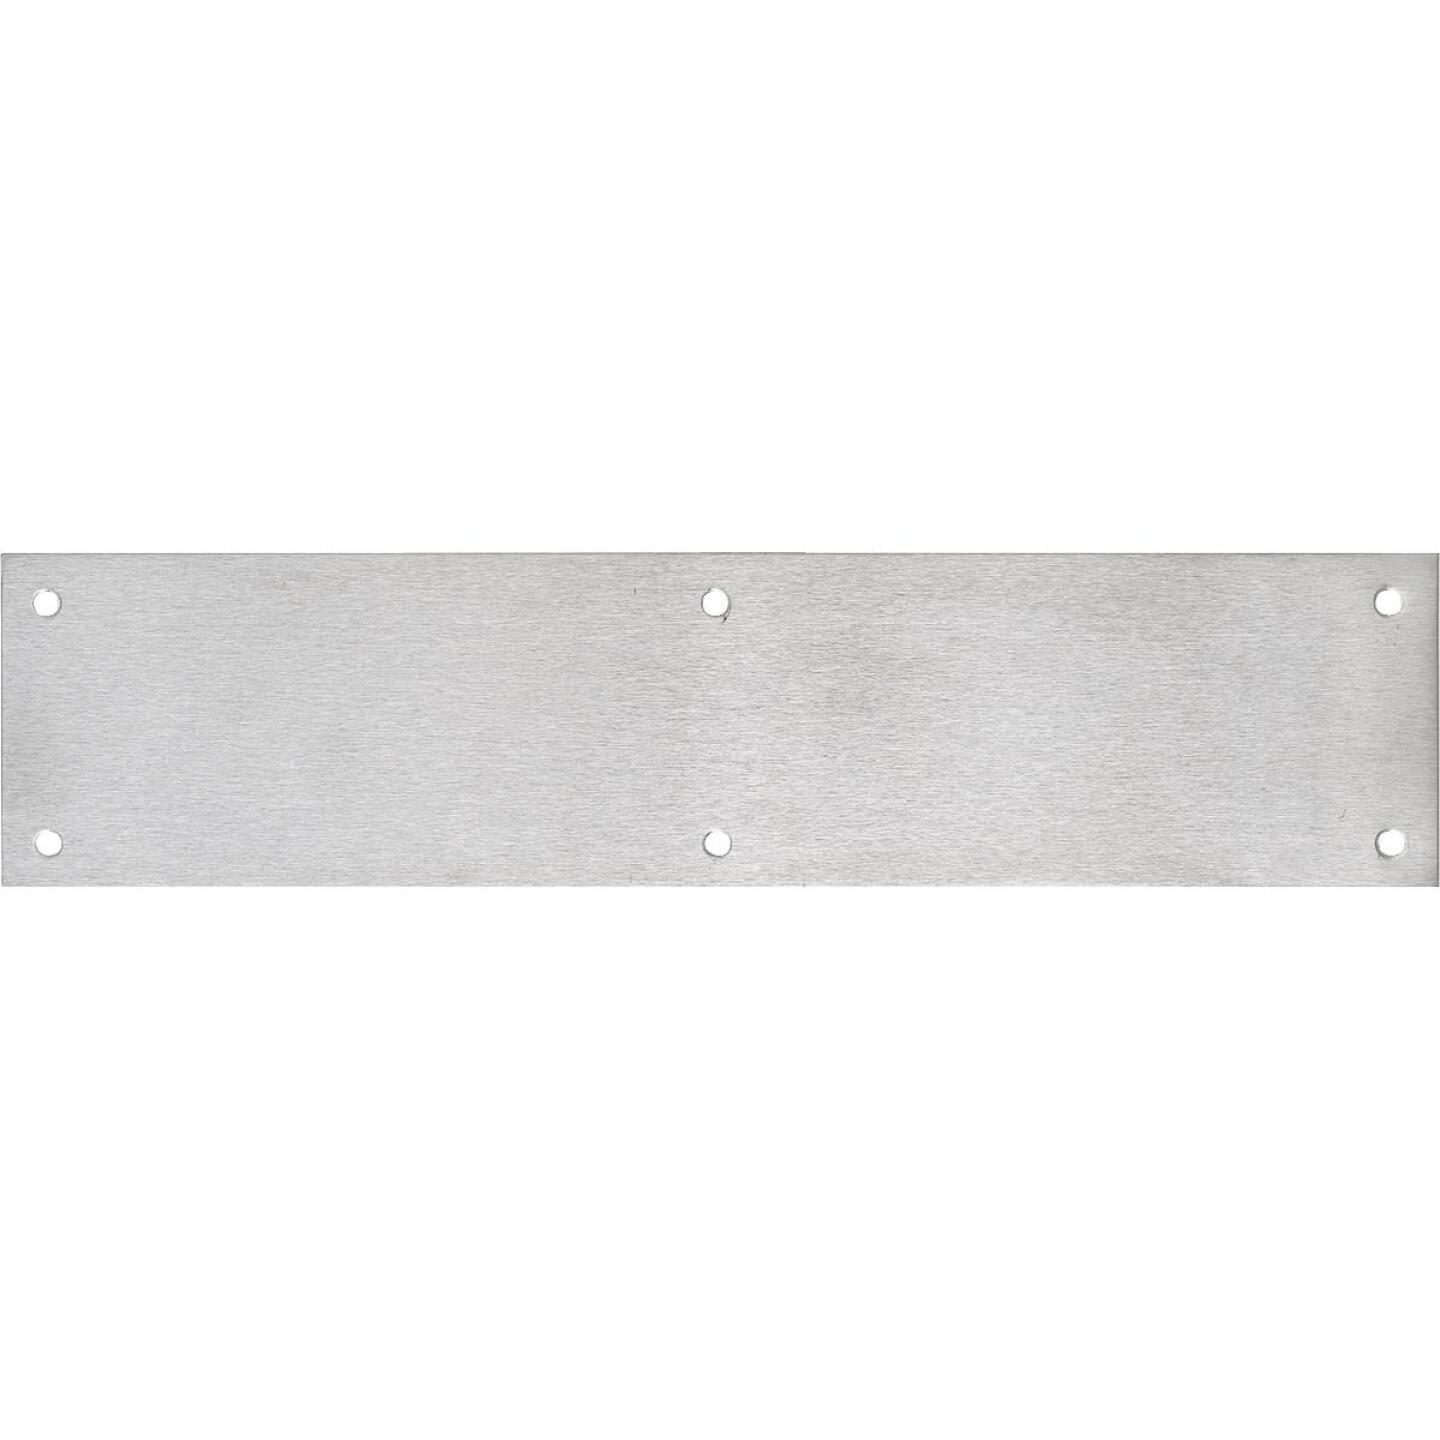 Tell 3.5 In. x 15 In. Stainless Steel Push Plate Image 1